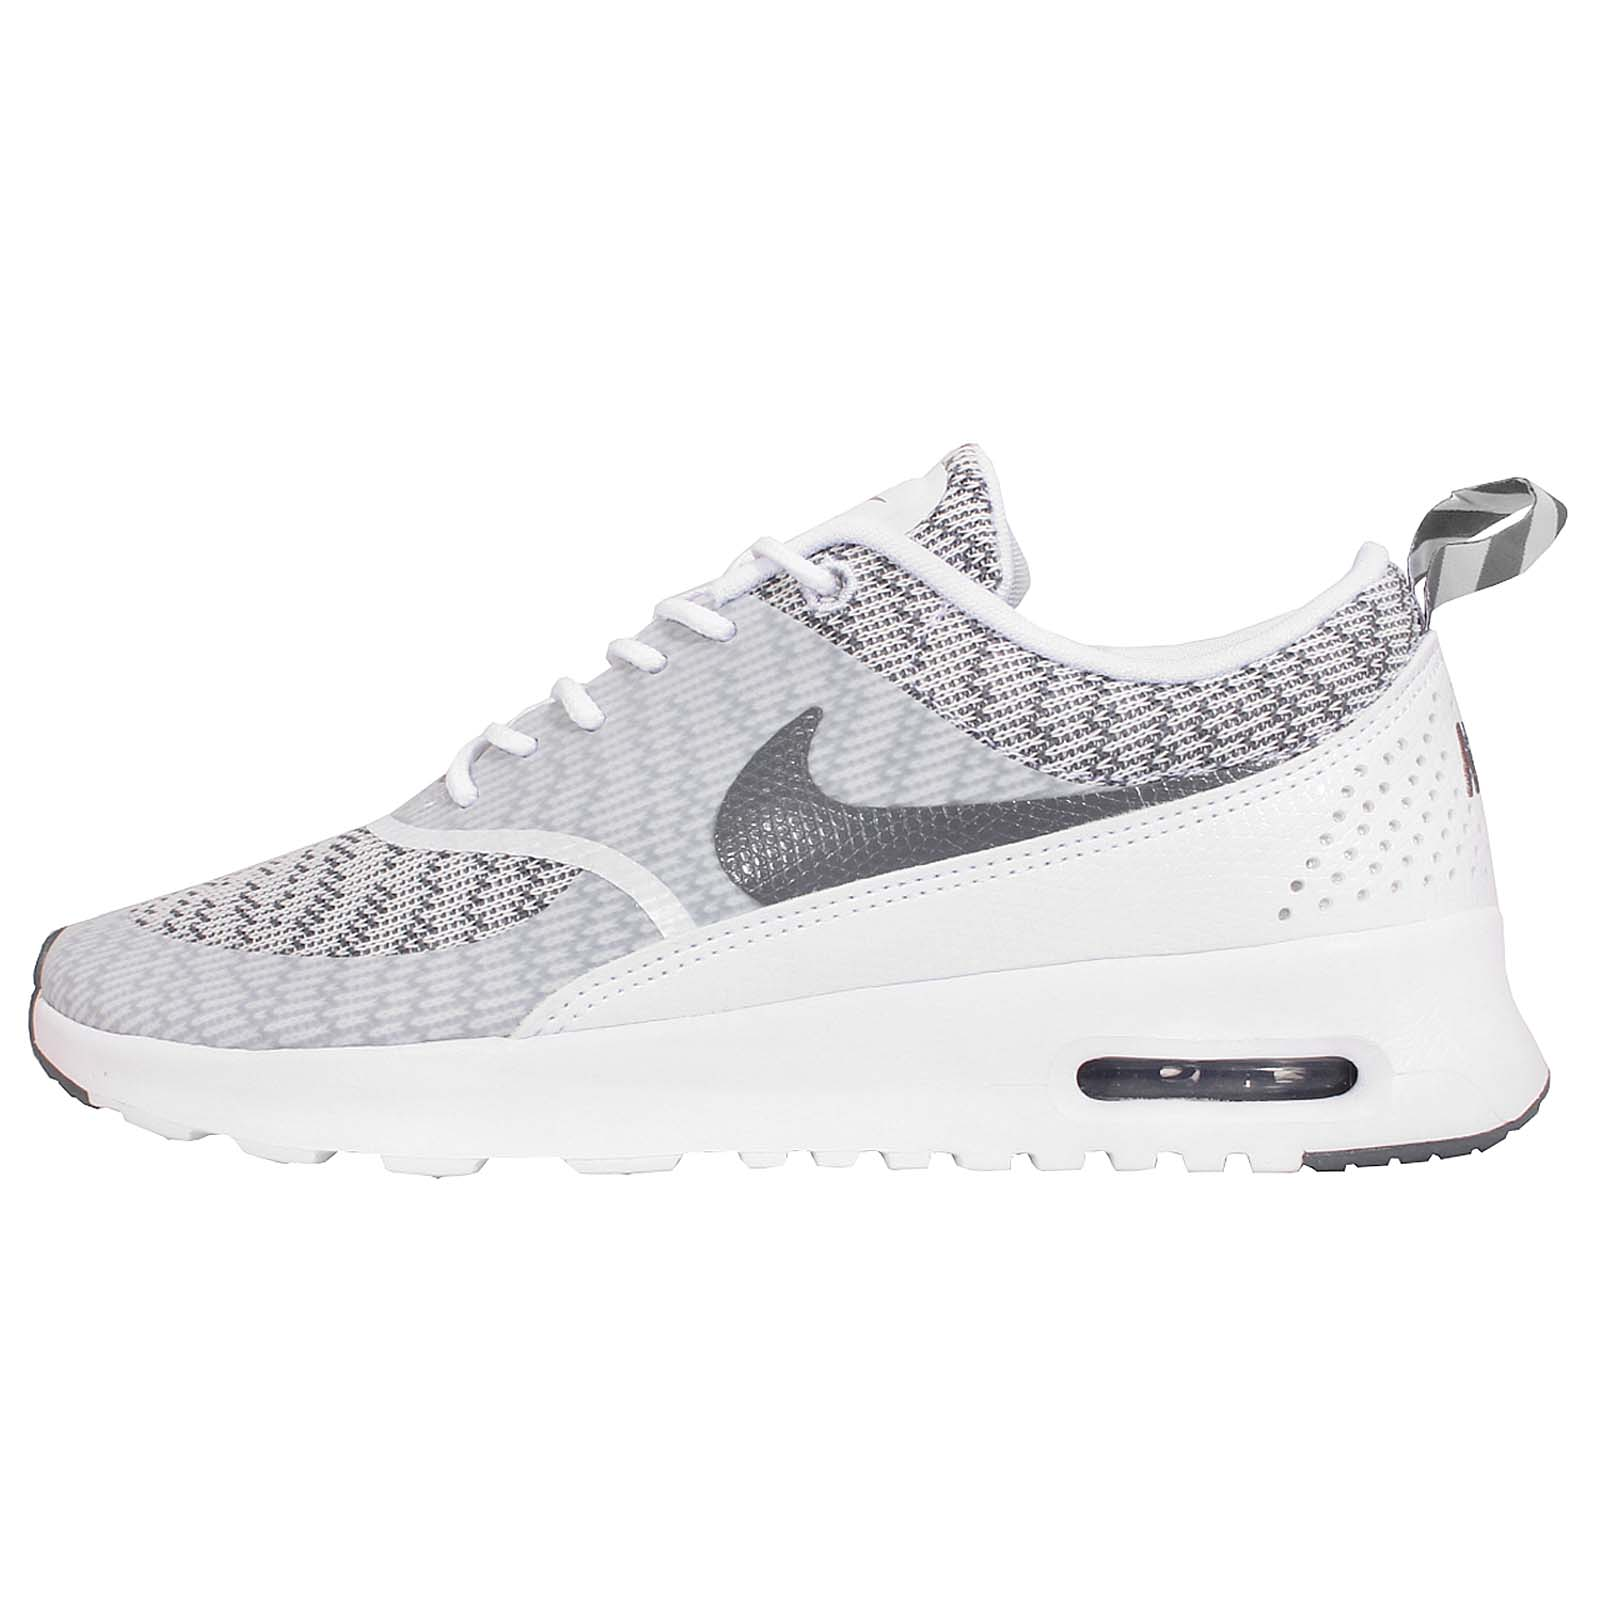 Wmns Nike Air Max Thea KJCRD Grey White Womens NSW Running Shoes 718646-100 | eBay